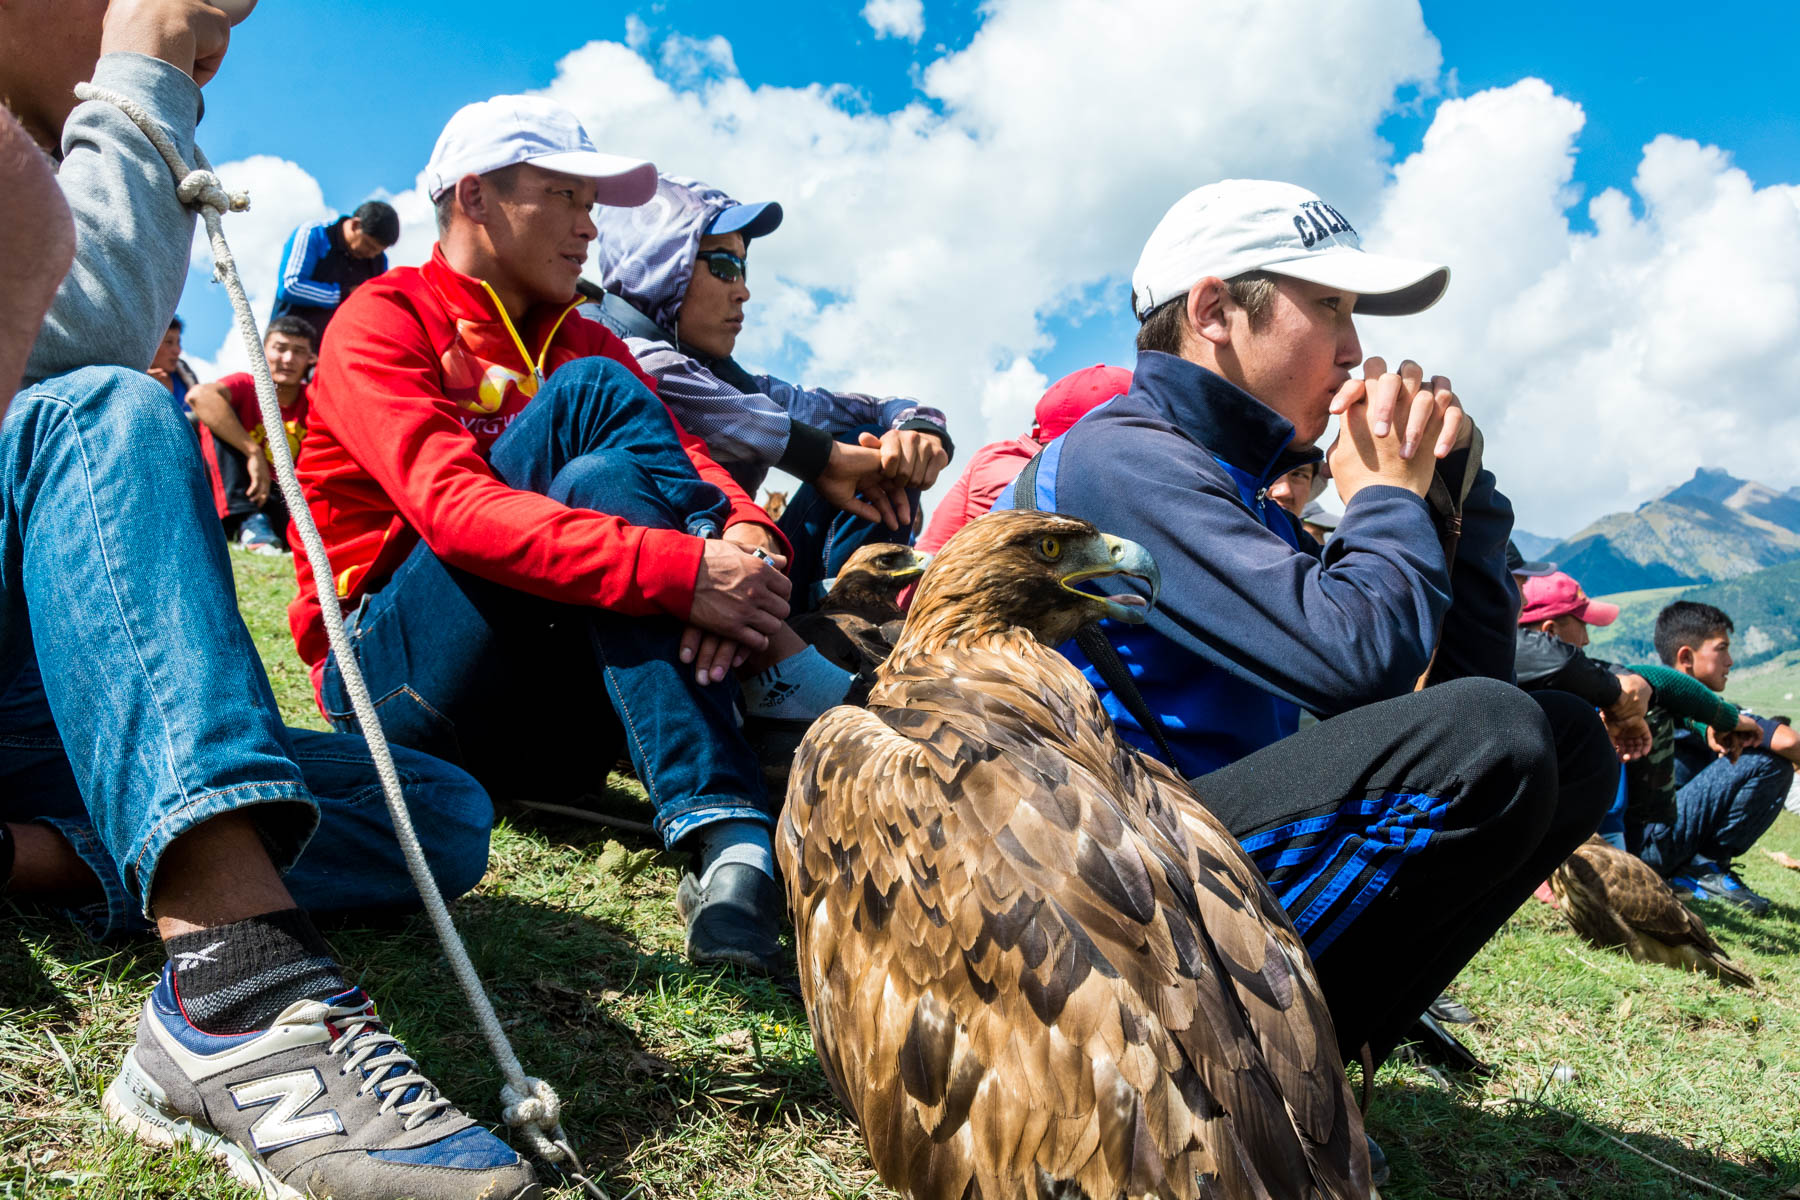 Spectators and eagles at the 2016 World Nomad Games